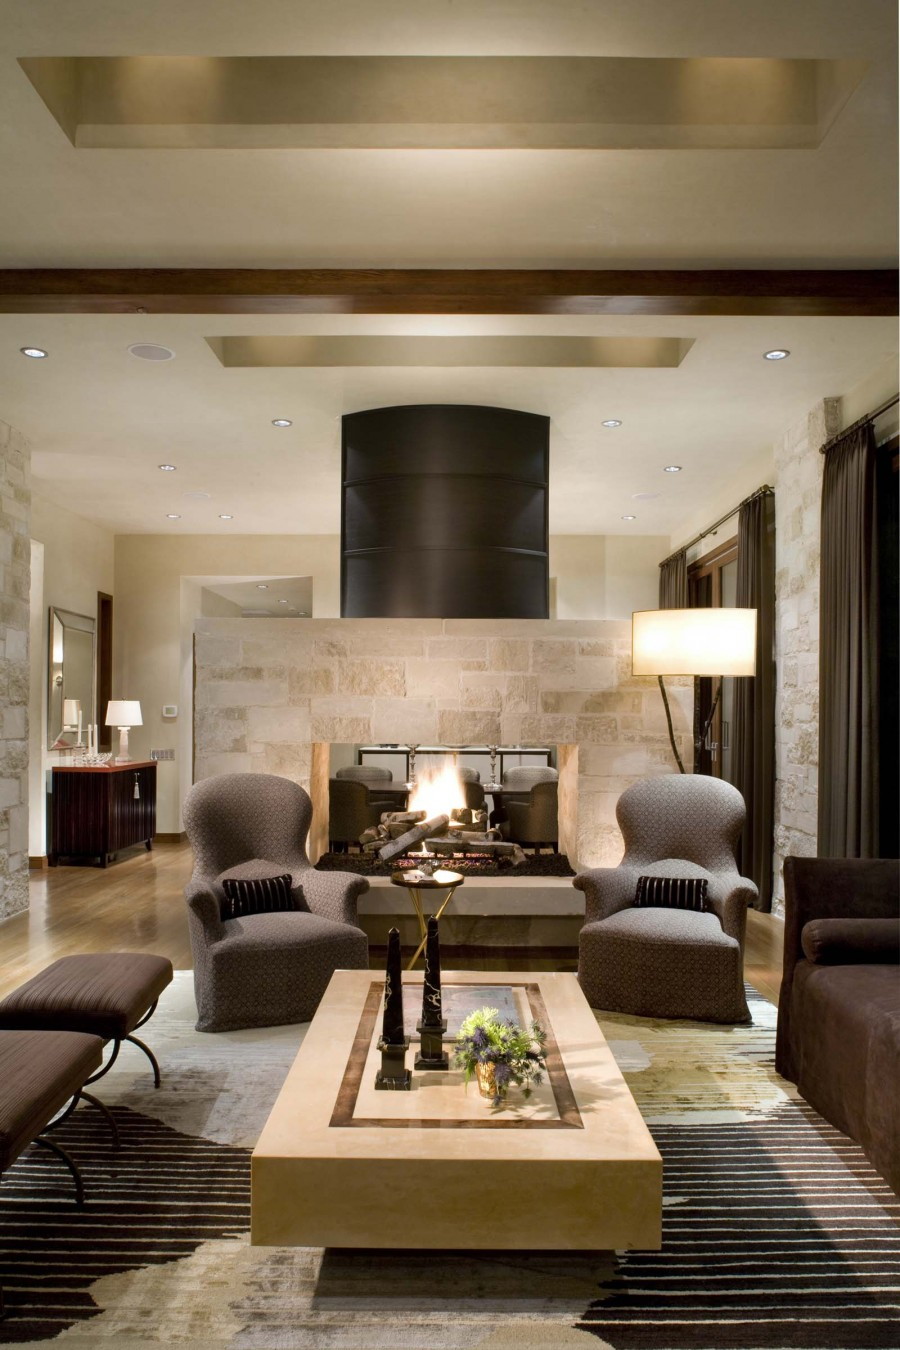 16 fabulous earth tones living room designs decoholic Contemporary home interior design